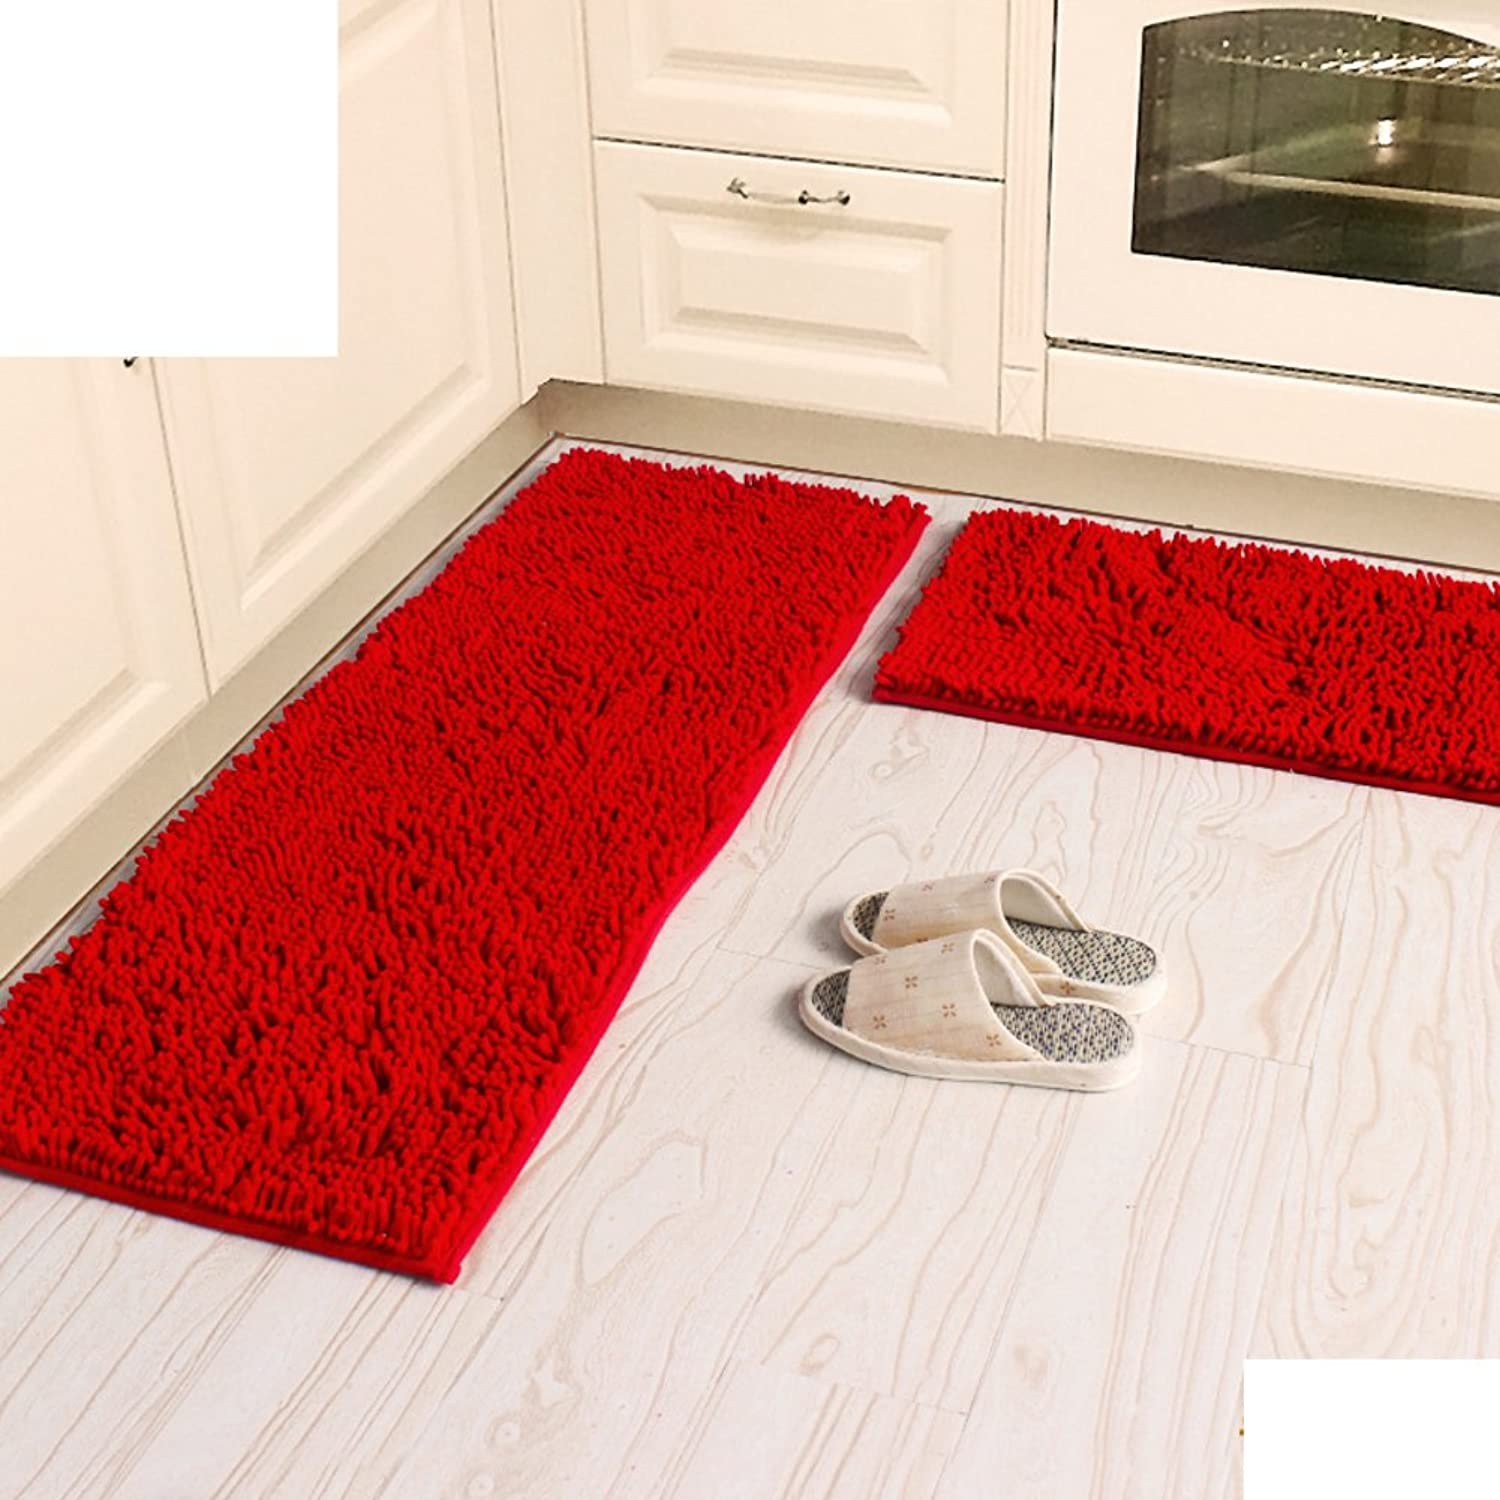 Chenille mat Doormat [Living Room] Bedroom Kitchen Indoor mats Hall Non-Slip Suction pratunam pad Door mats-A-J 40x60cm(16x24inch)